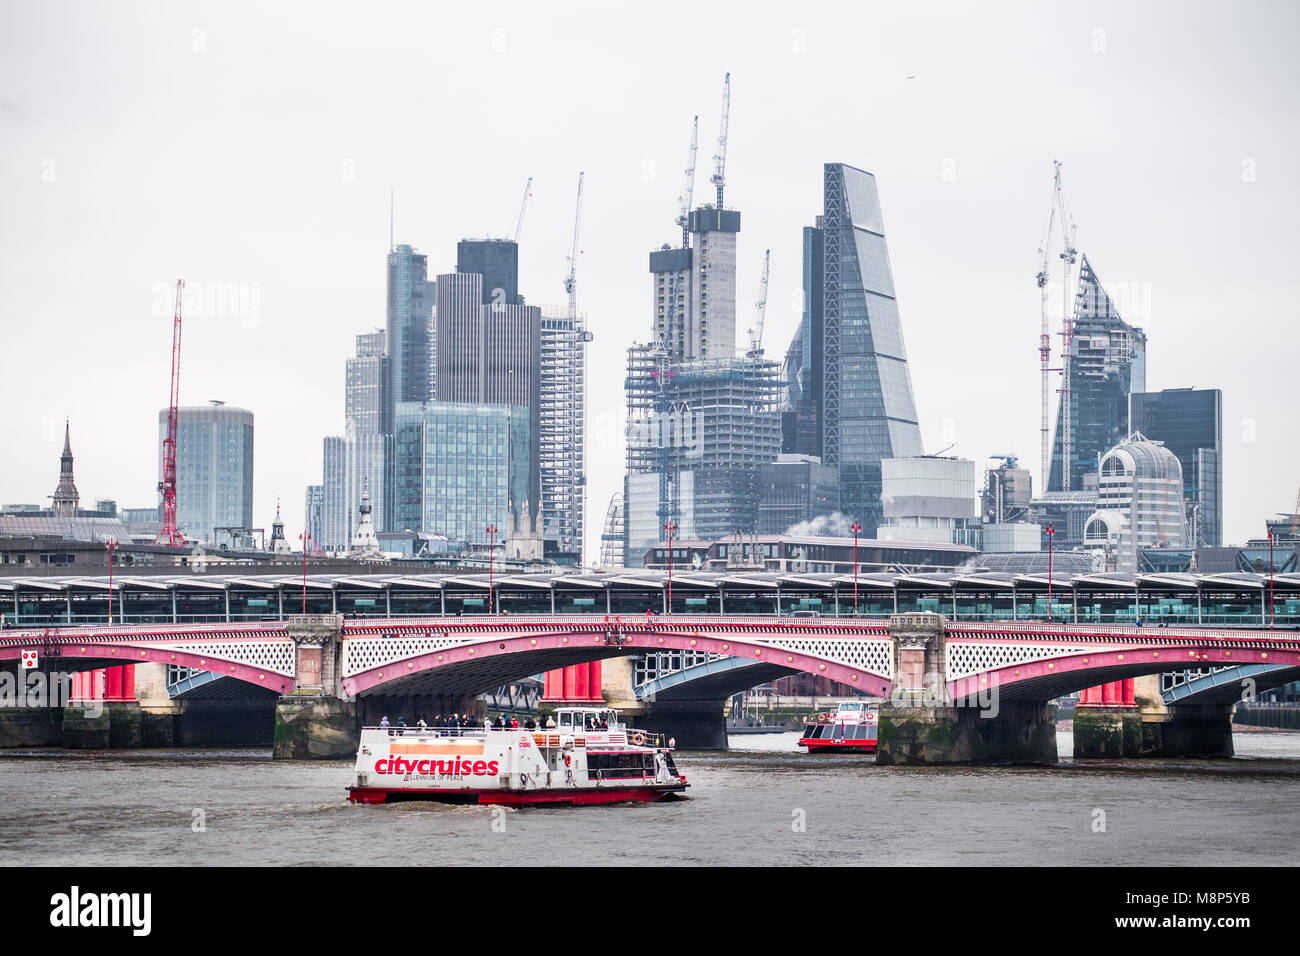 Blackfriars foot bridge in front of the Blackfriars railway bridge over the river Thames, with city of London financial Stock Photo